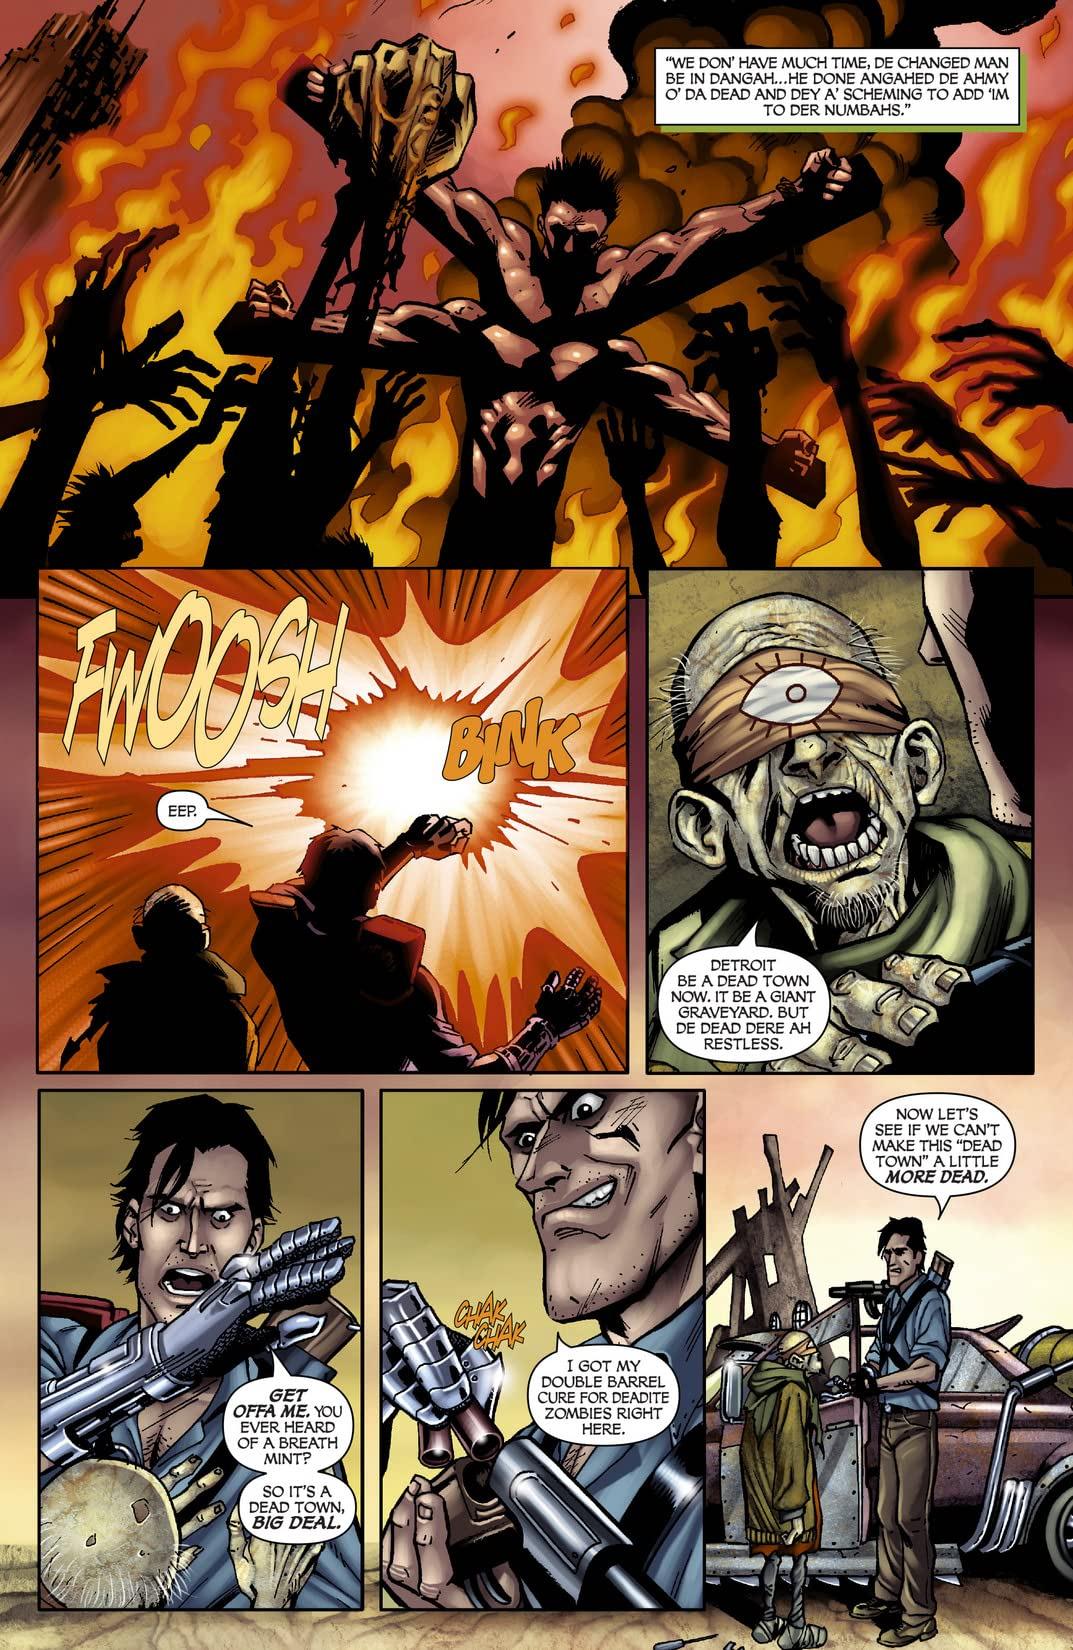 Army of Darkness Vol. 2 #2